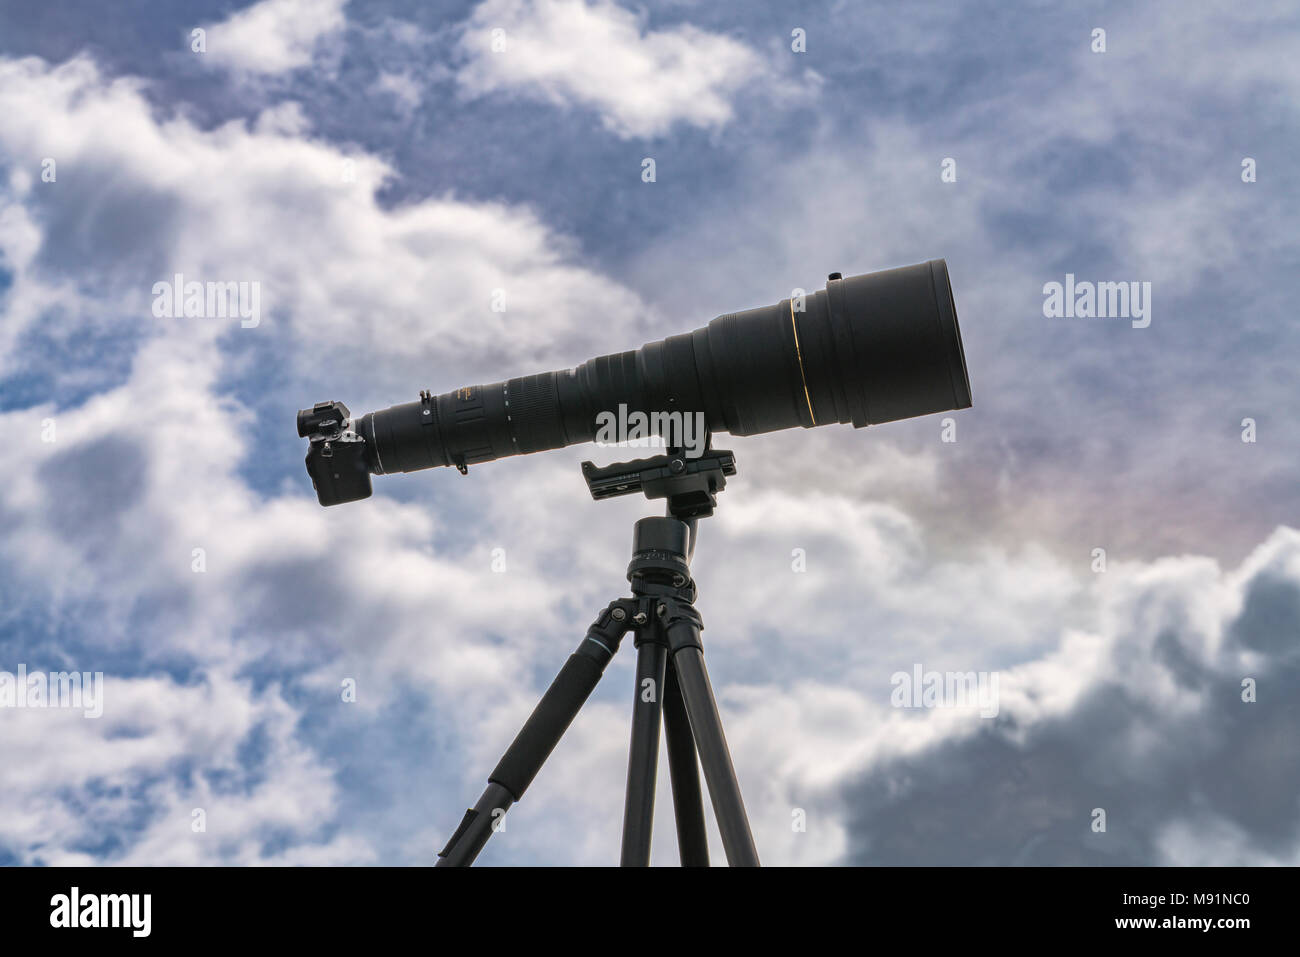 Camera on a tripod with a long lens, 800mm. - Stock Image